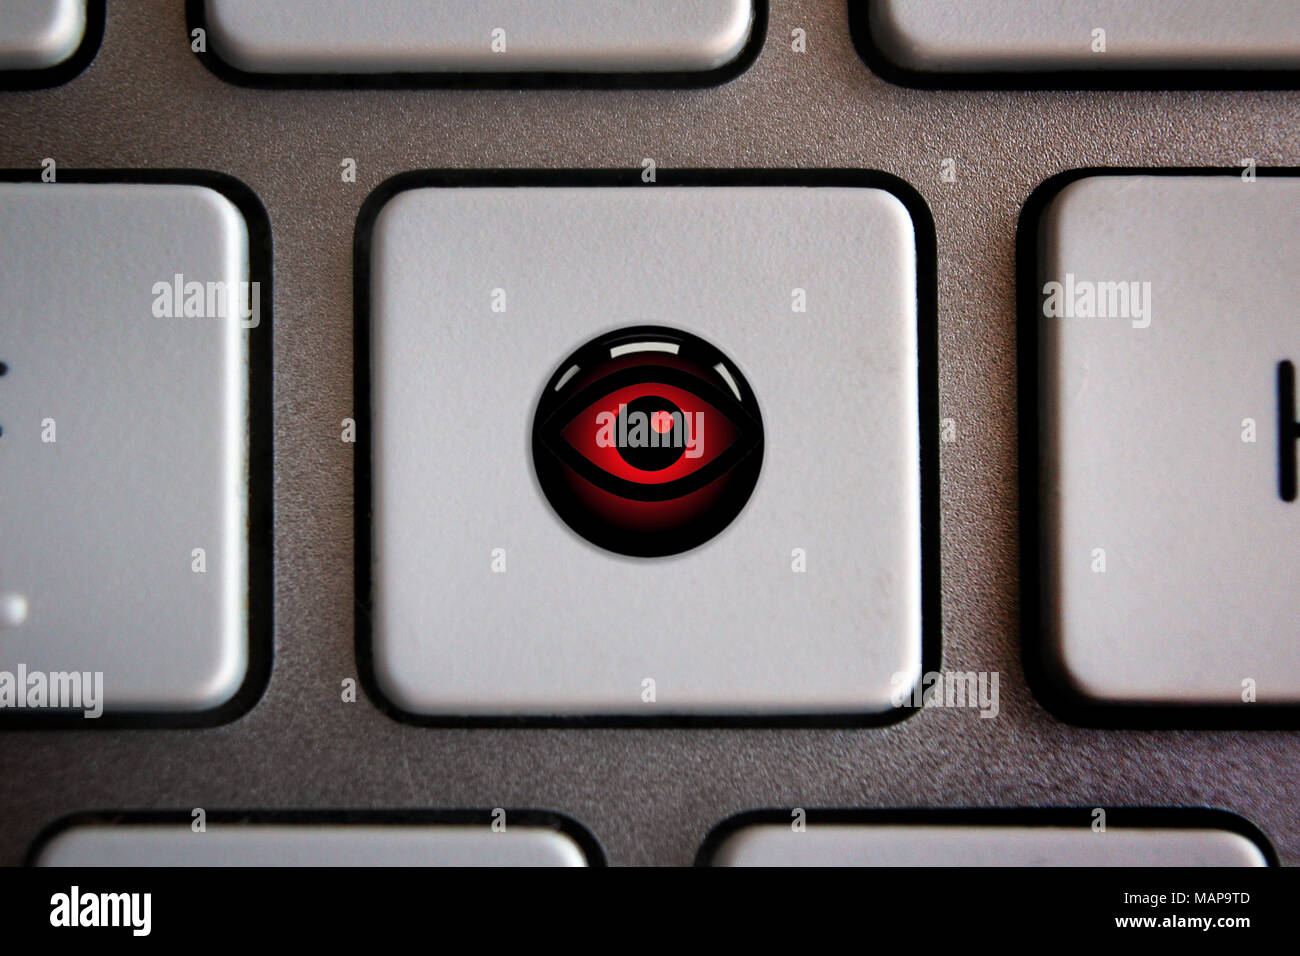 Image of eye icon on computer keyboard button - Stock Image